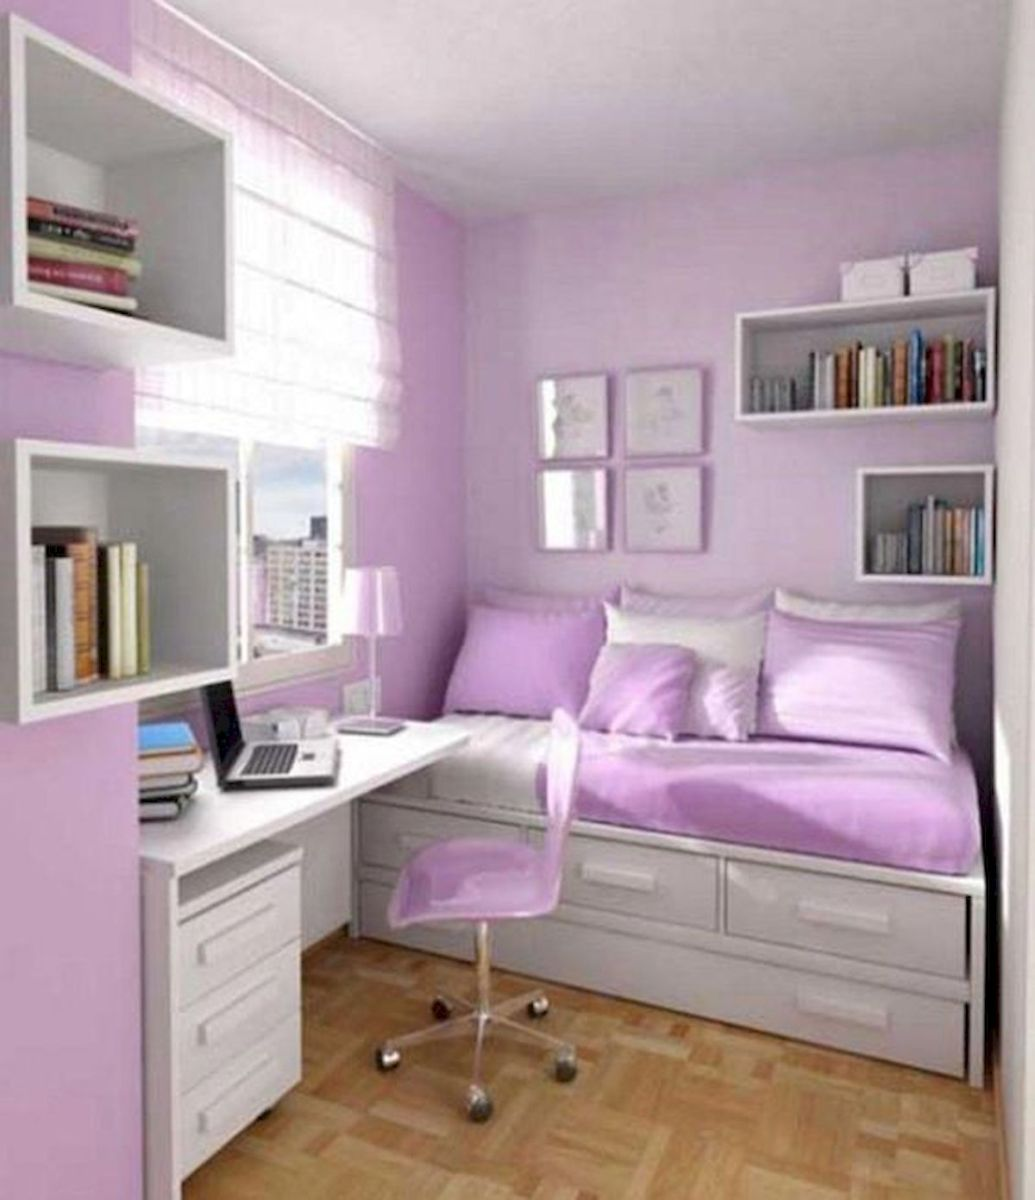 33 Awesome College Bedroom Decor Ideas And Remodel (12)